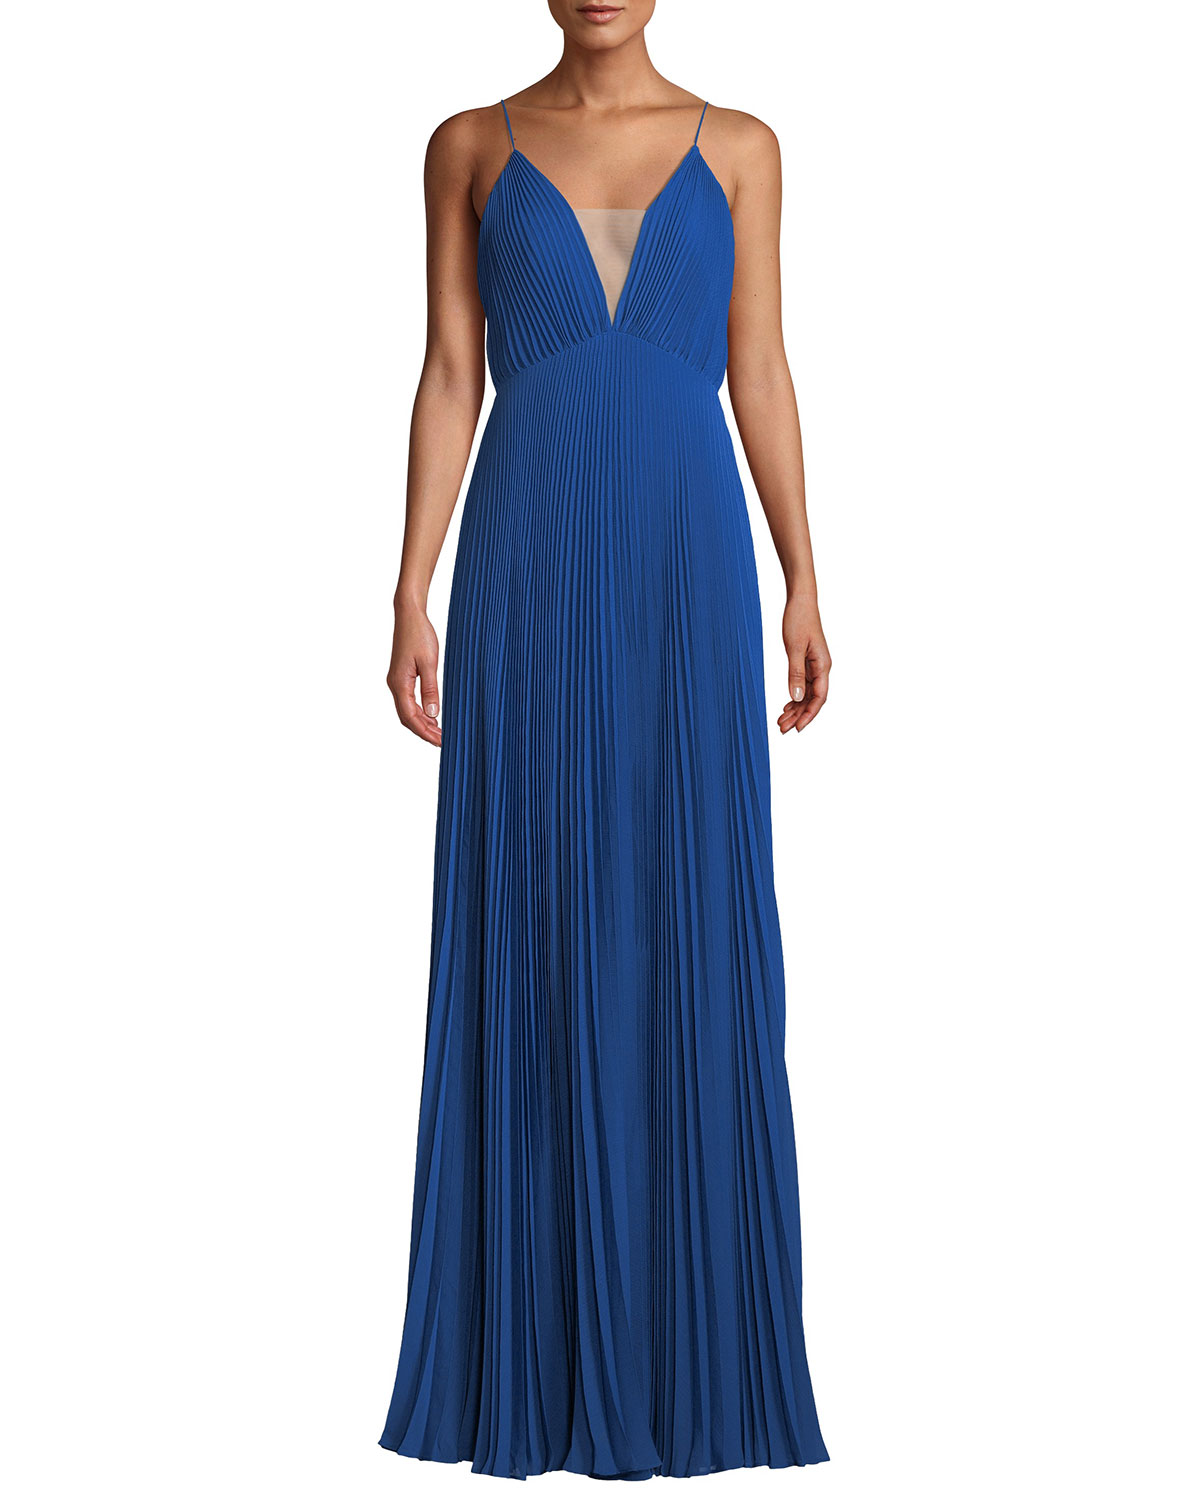 Veronika Pleated Sleeveless Gown